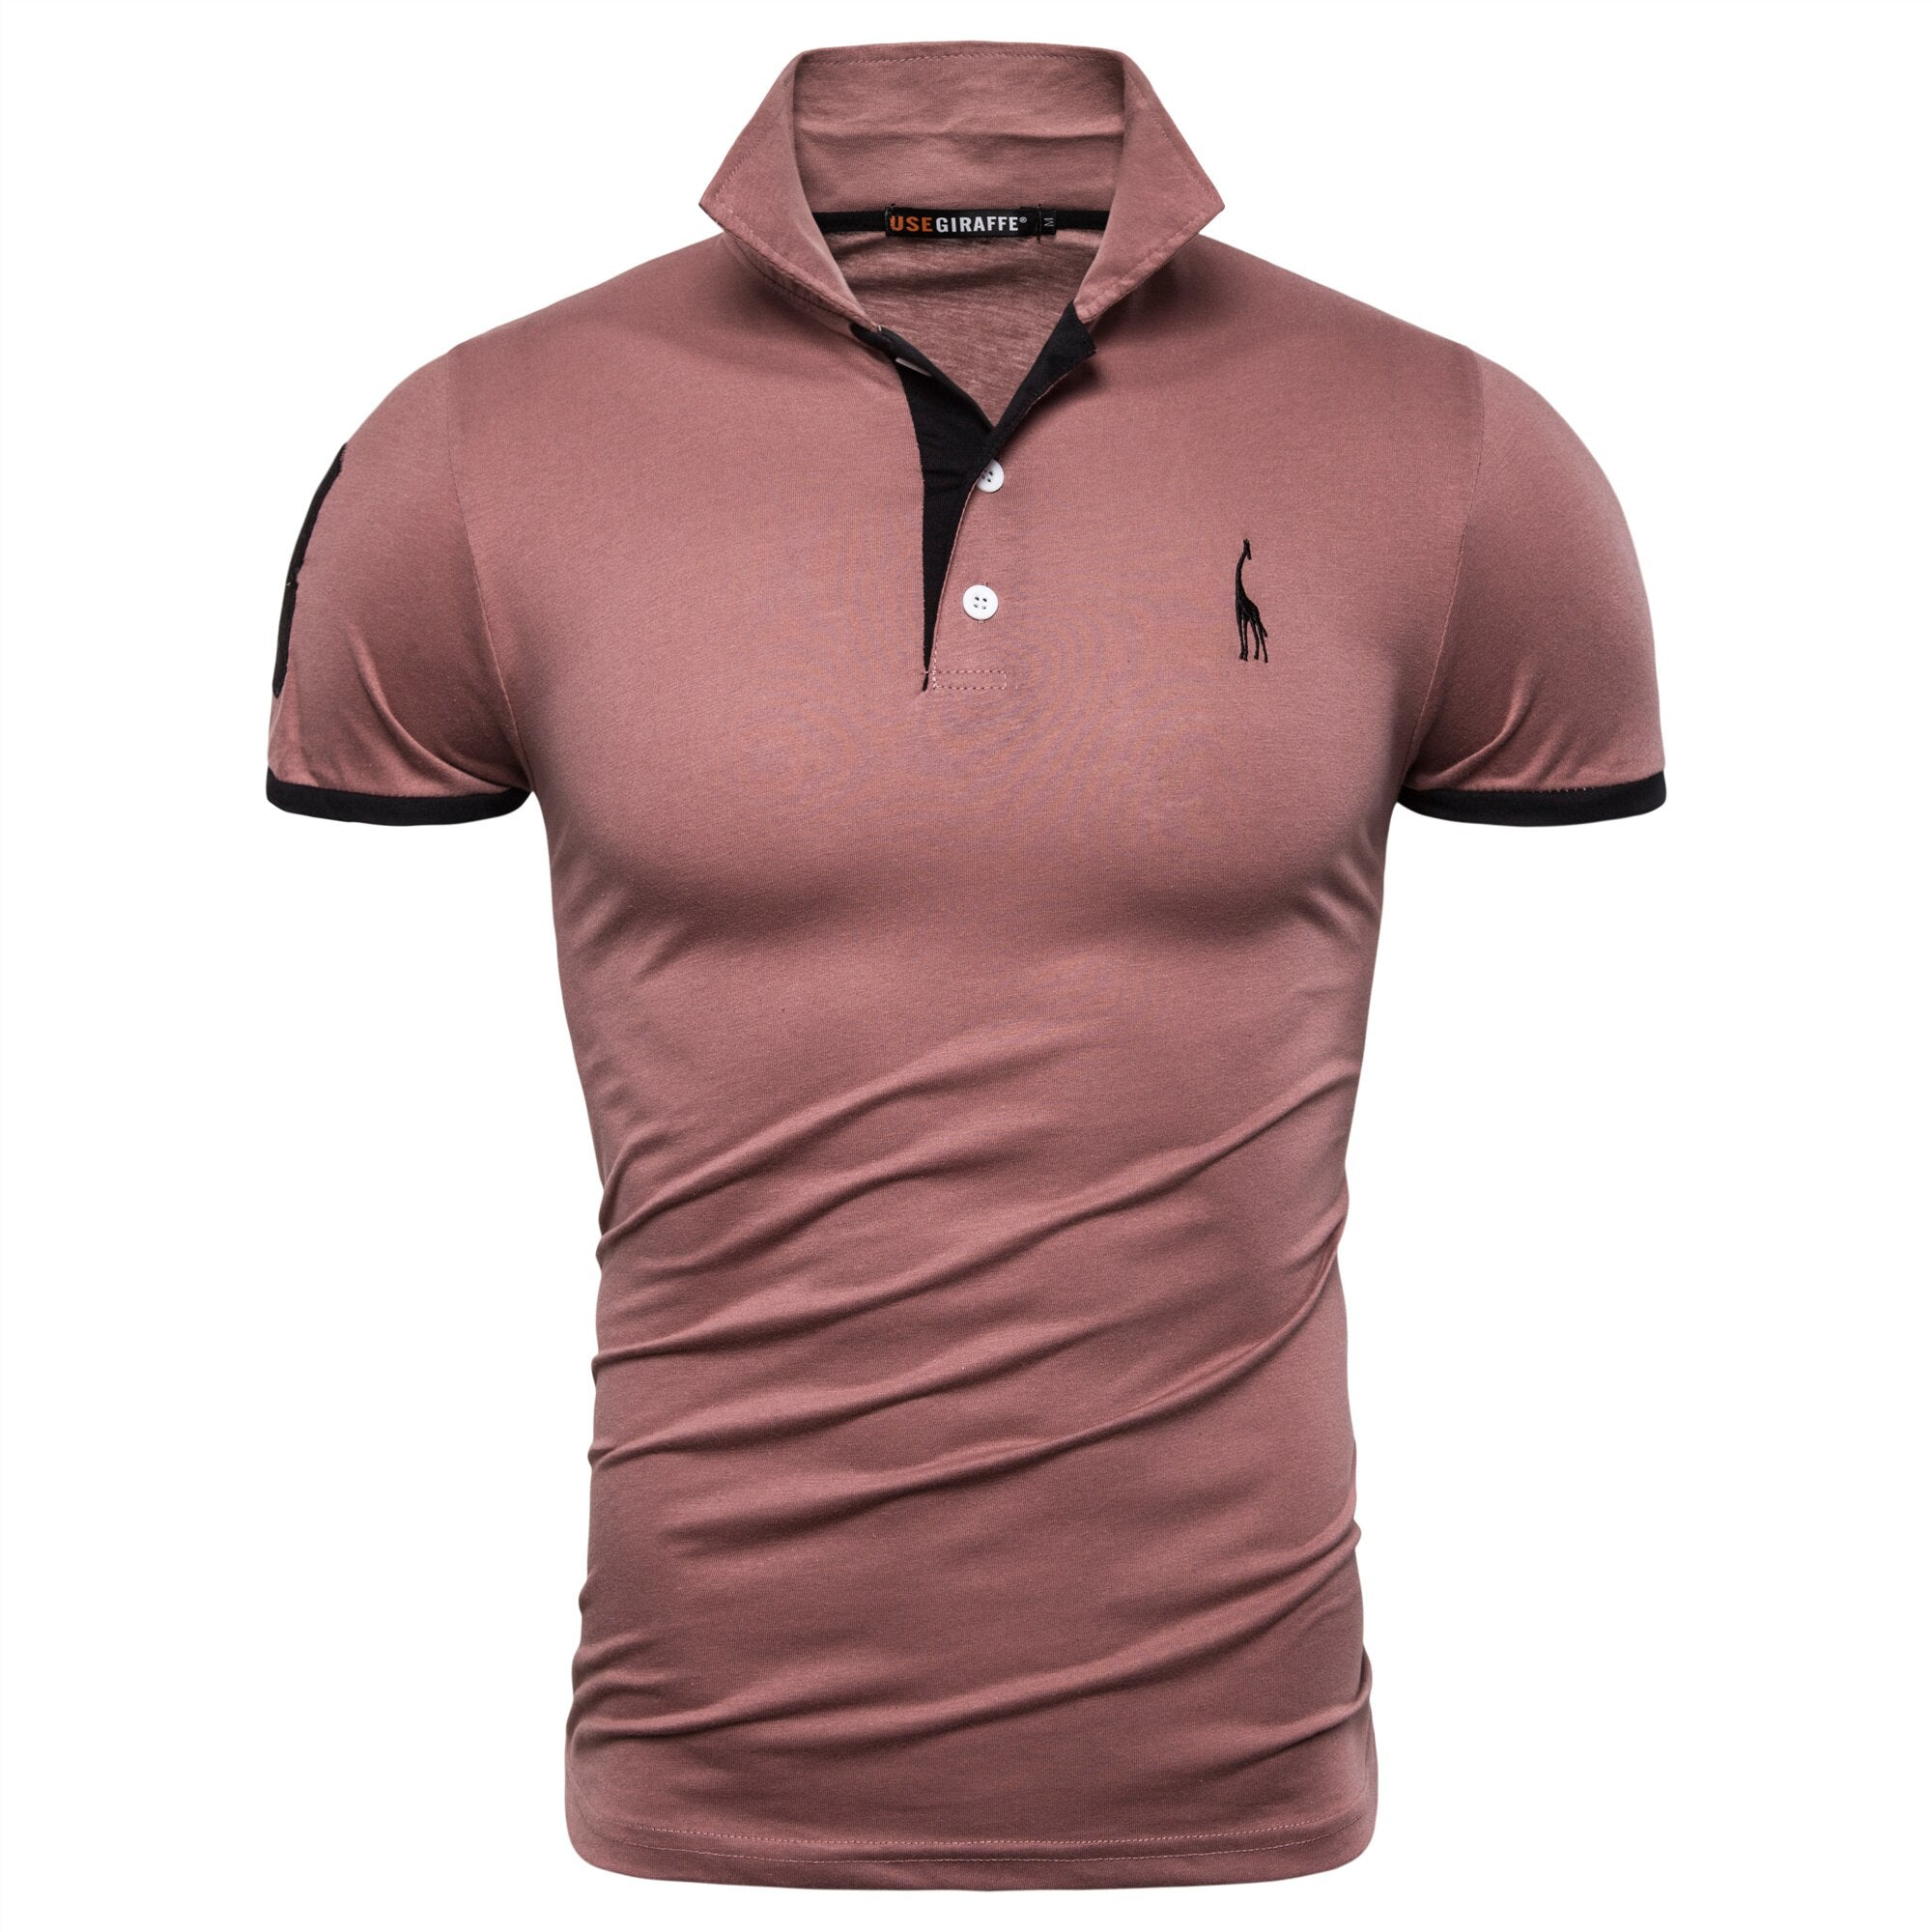 Dropshipping 13 Colors PoloGiraffe T Shirt Men Deer Embroidery Short Sleeve T-Shirts Casual Turn Down Collar Tops Tees For Men